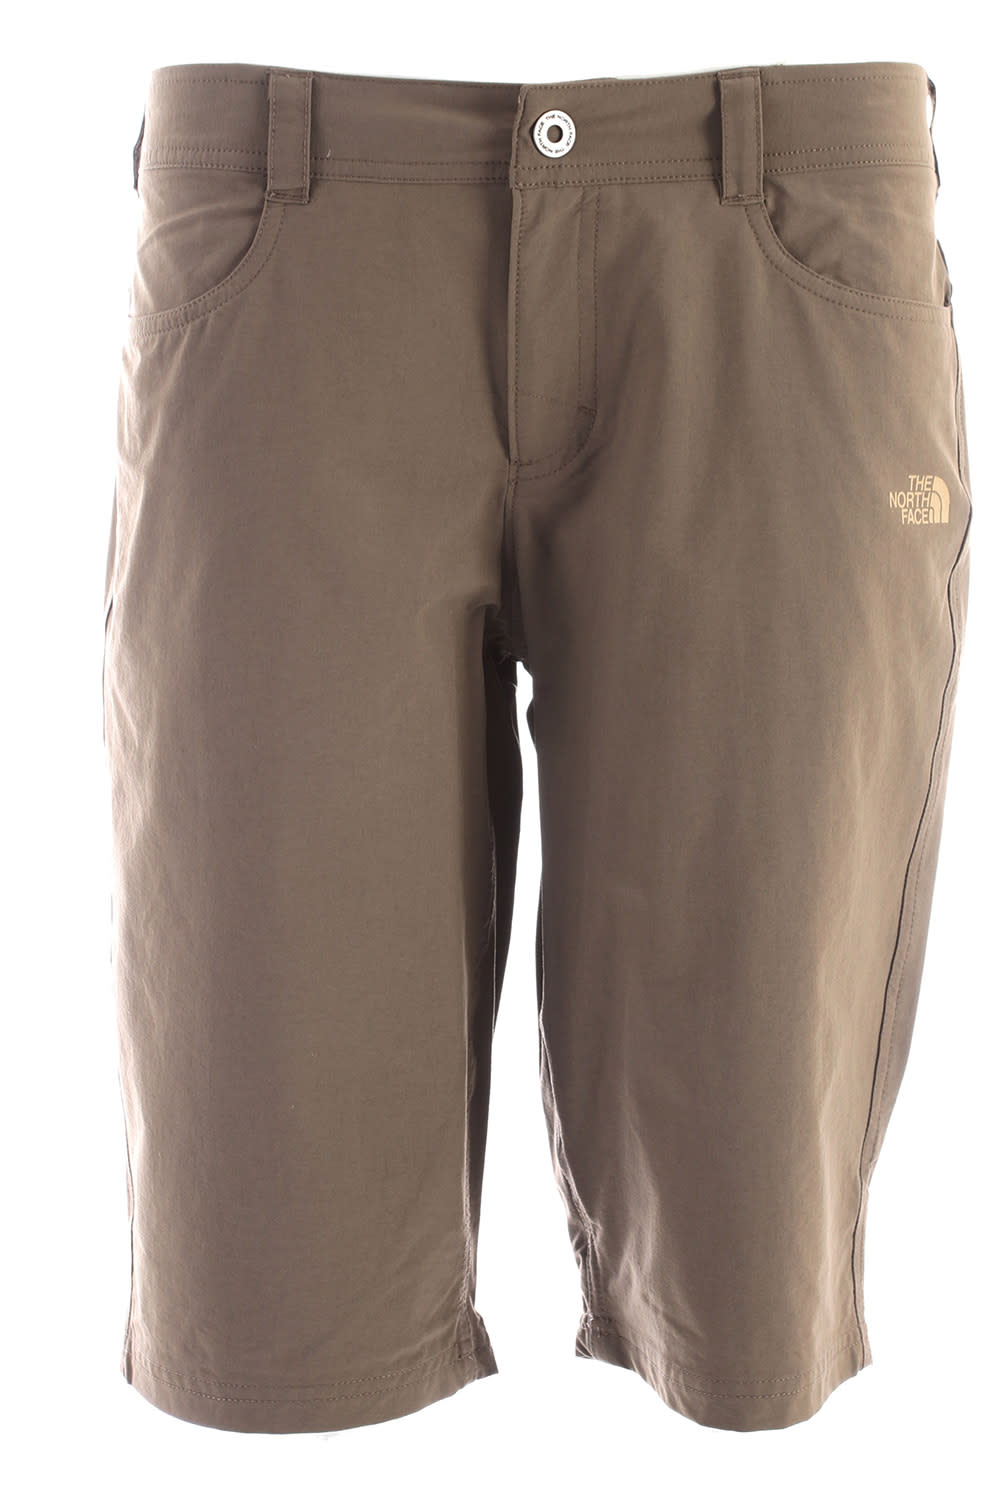 On sale the north face taggart long hiking shorts womens for Women s fishing shorts